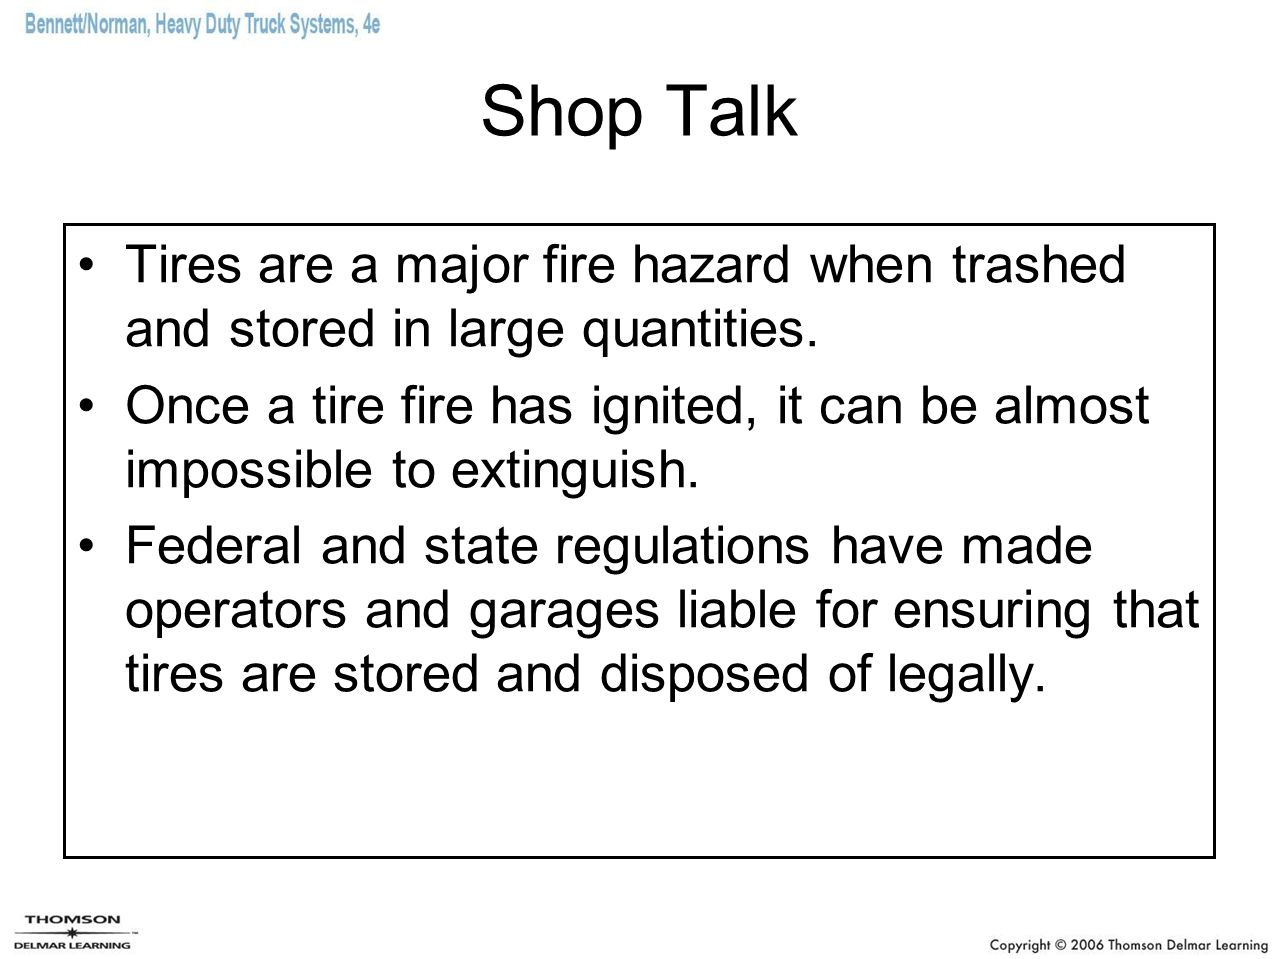 Shop Talk Tires are a major fire hazard when trashed and stored in large quantities. Once a tire fire has ignited, it can be almost impossible to exti